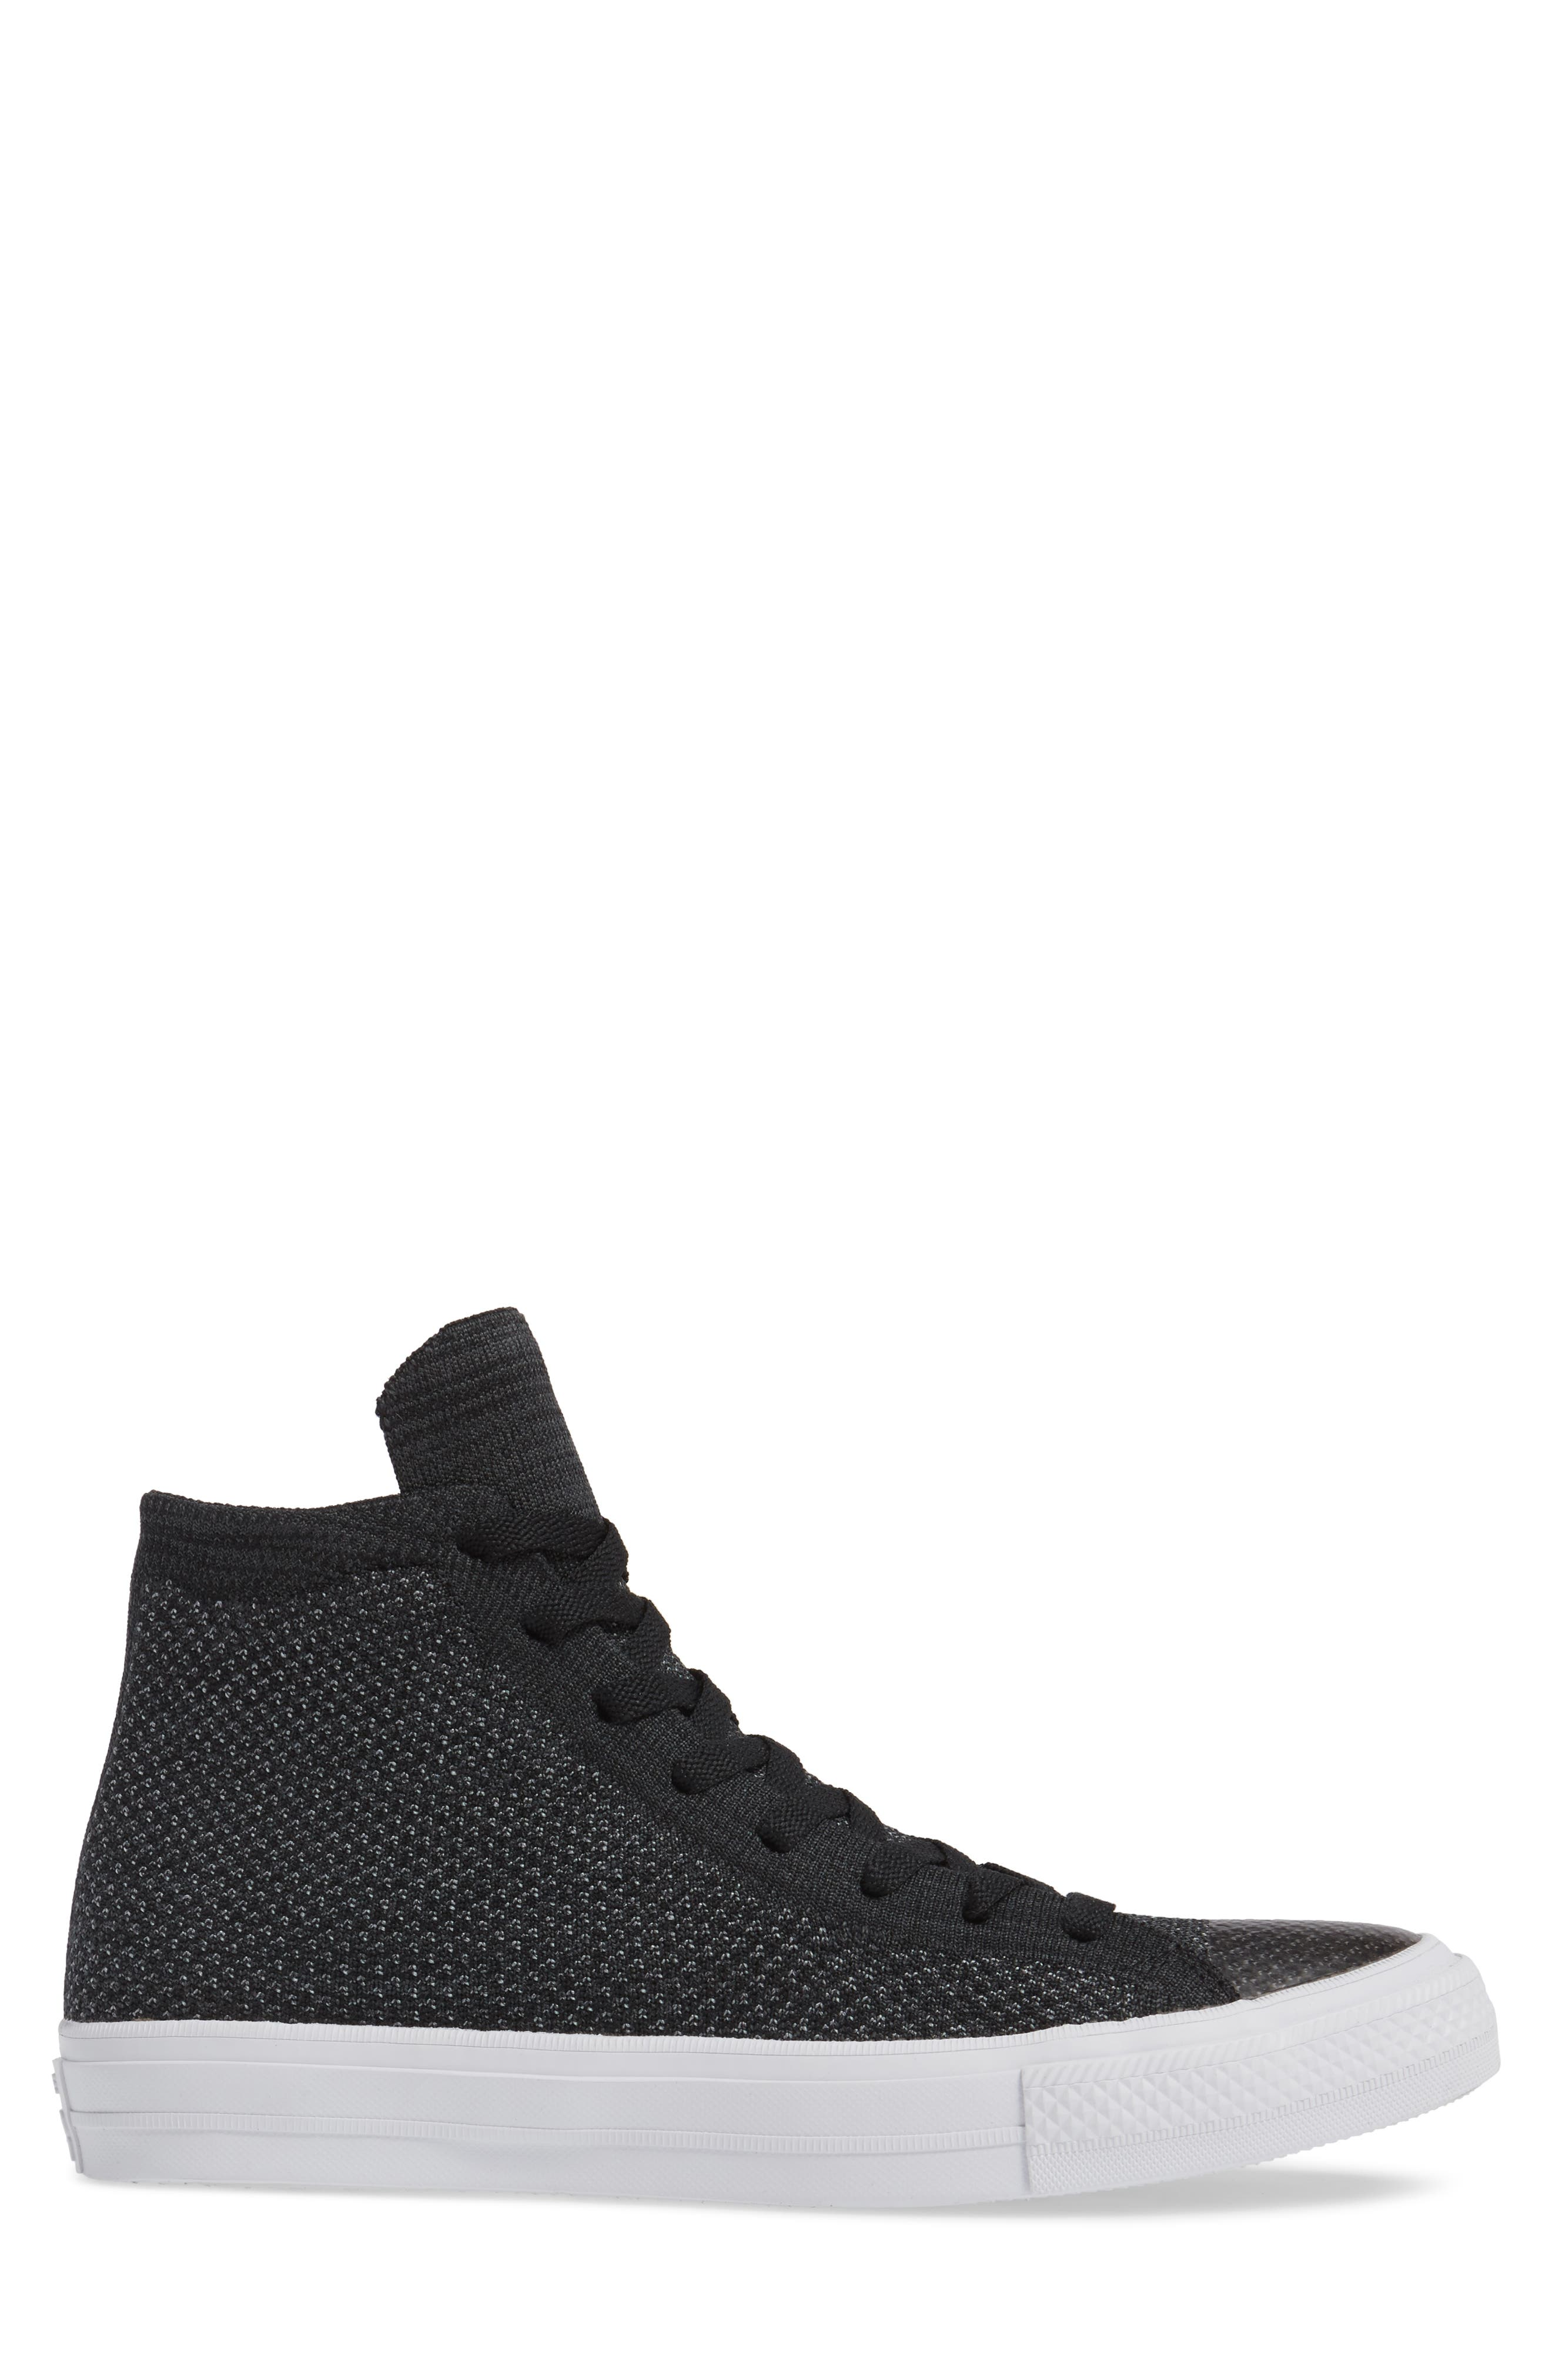 Chuck Taylor<sup>®</sup> All Star<sup>®</sup> Flyknit Hi Sneaker,                             Alternate thumbnail 13, color,